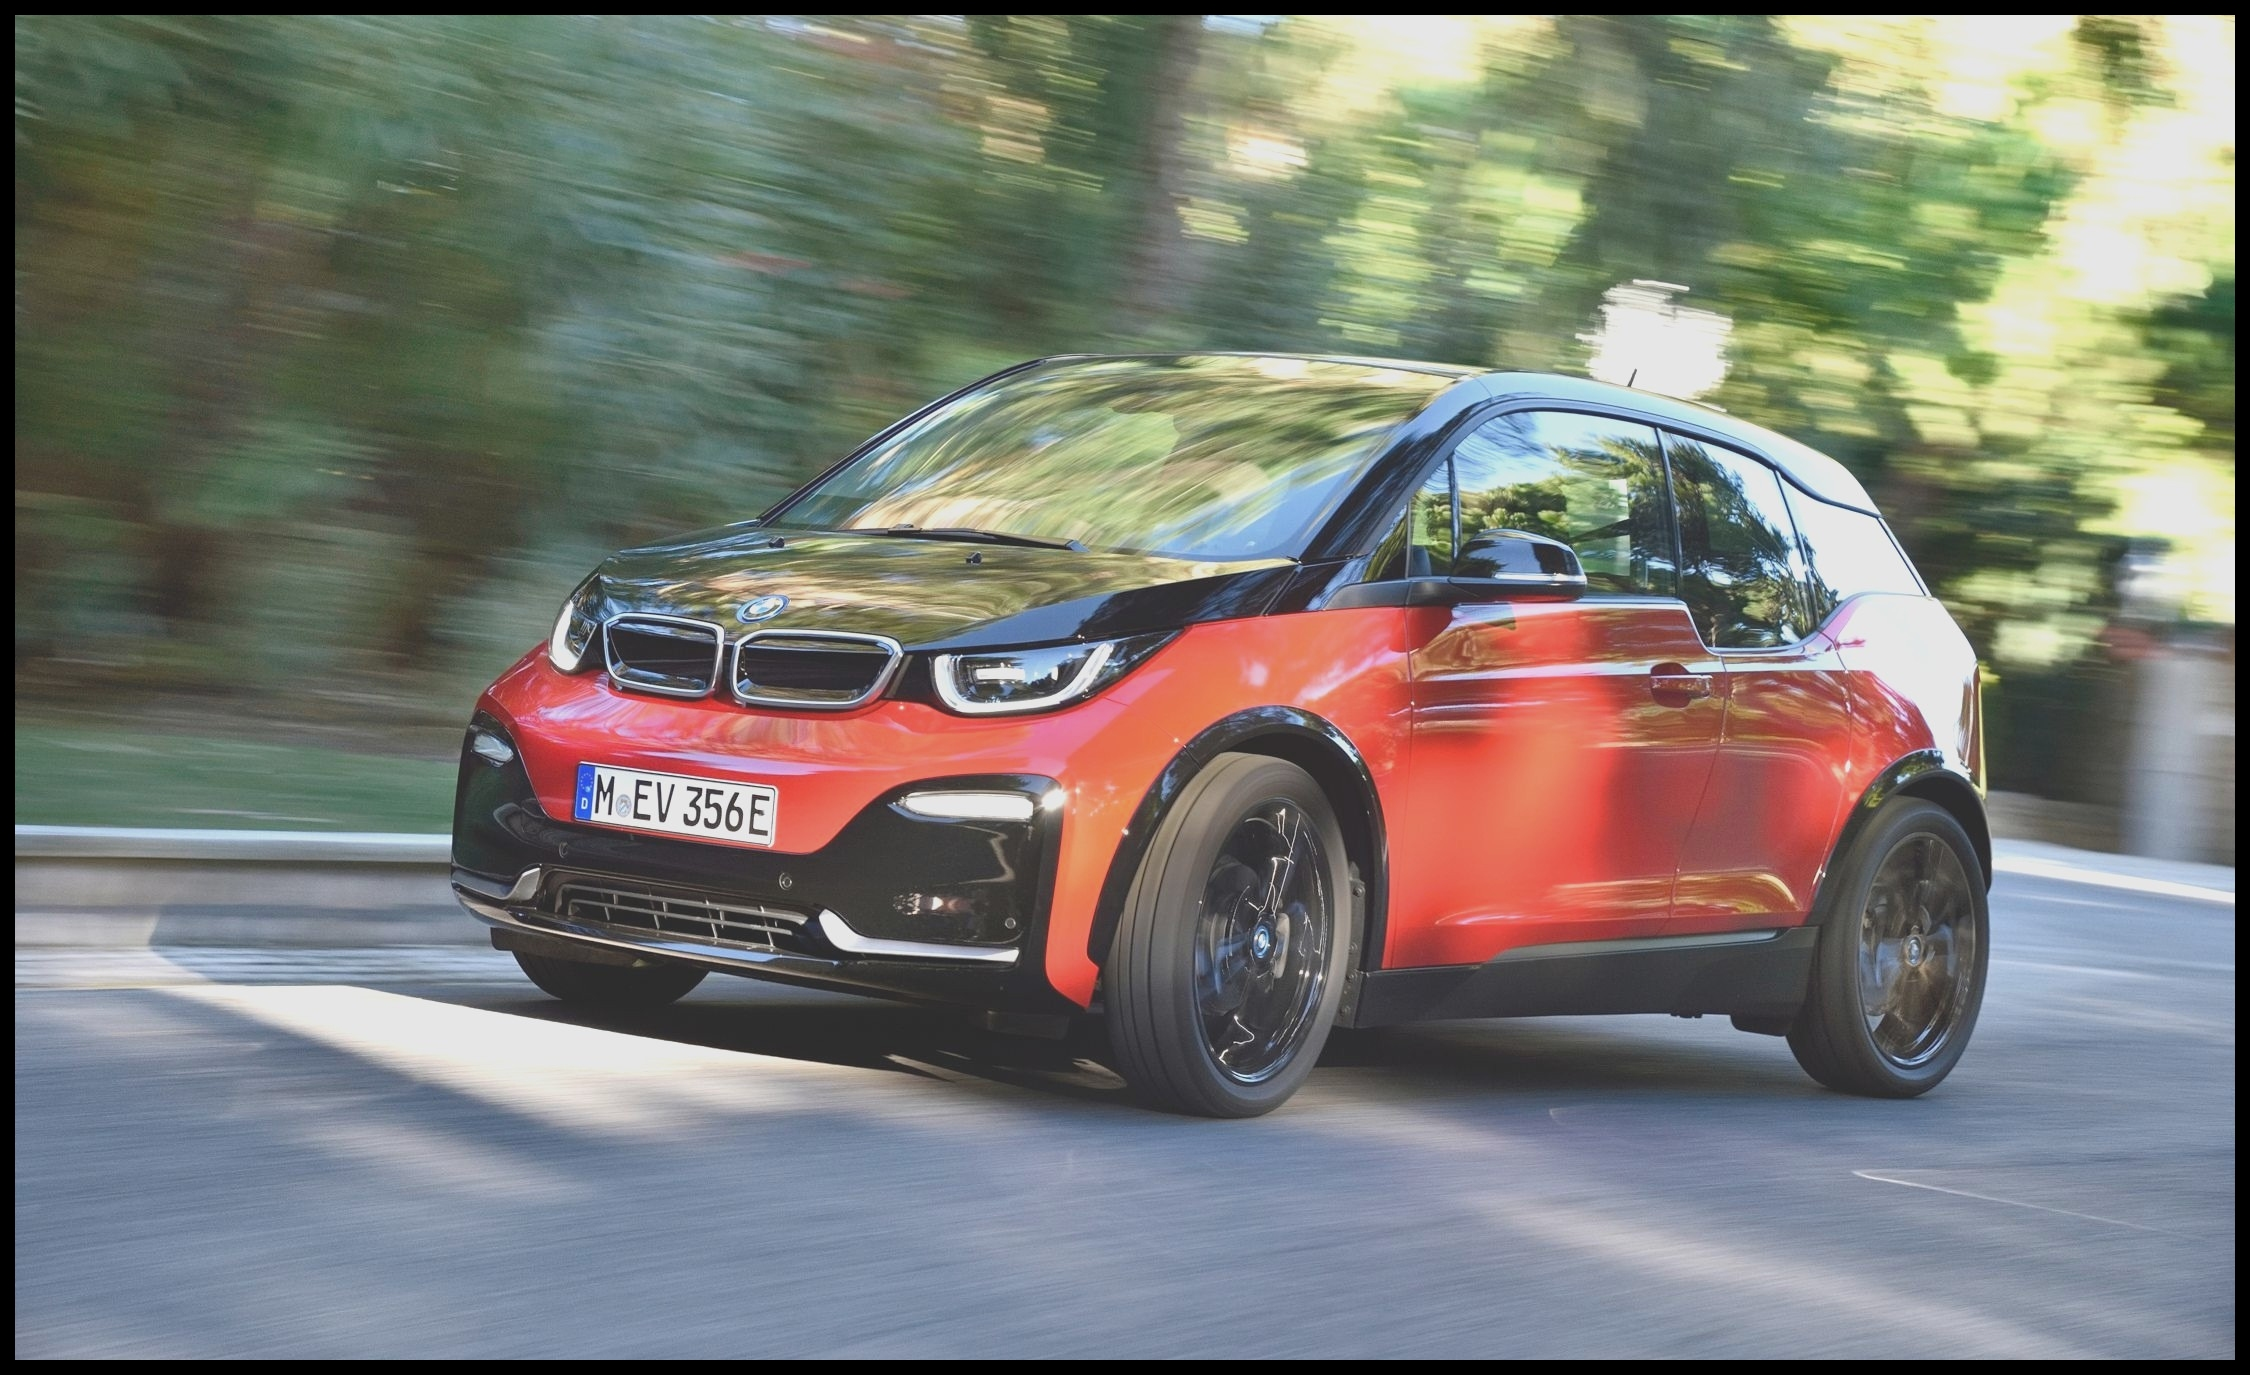 Bmw Electric Car Price Elegant 14 New Bmw I3 Price Bmw Electric Car Price New